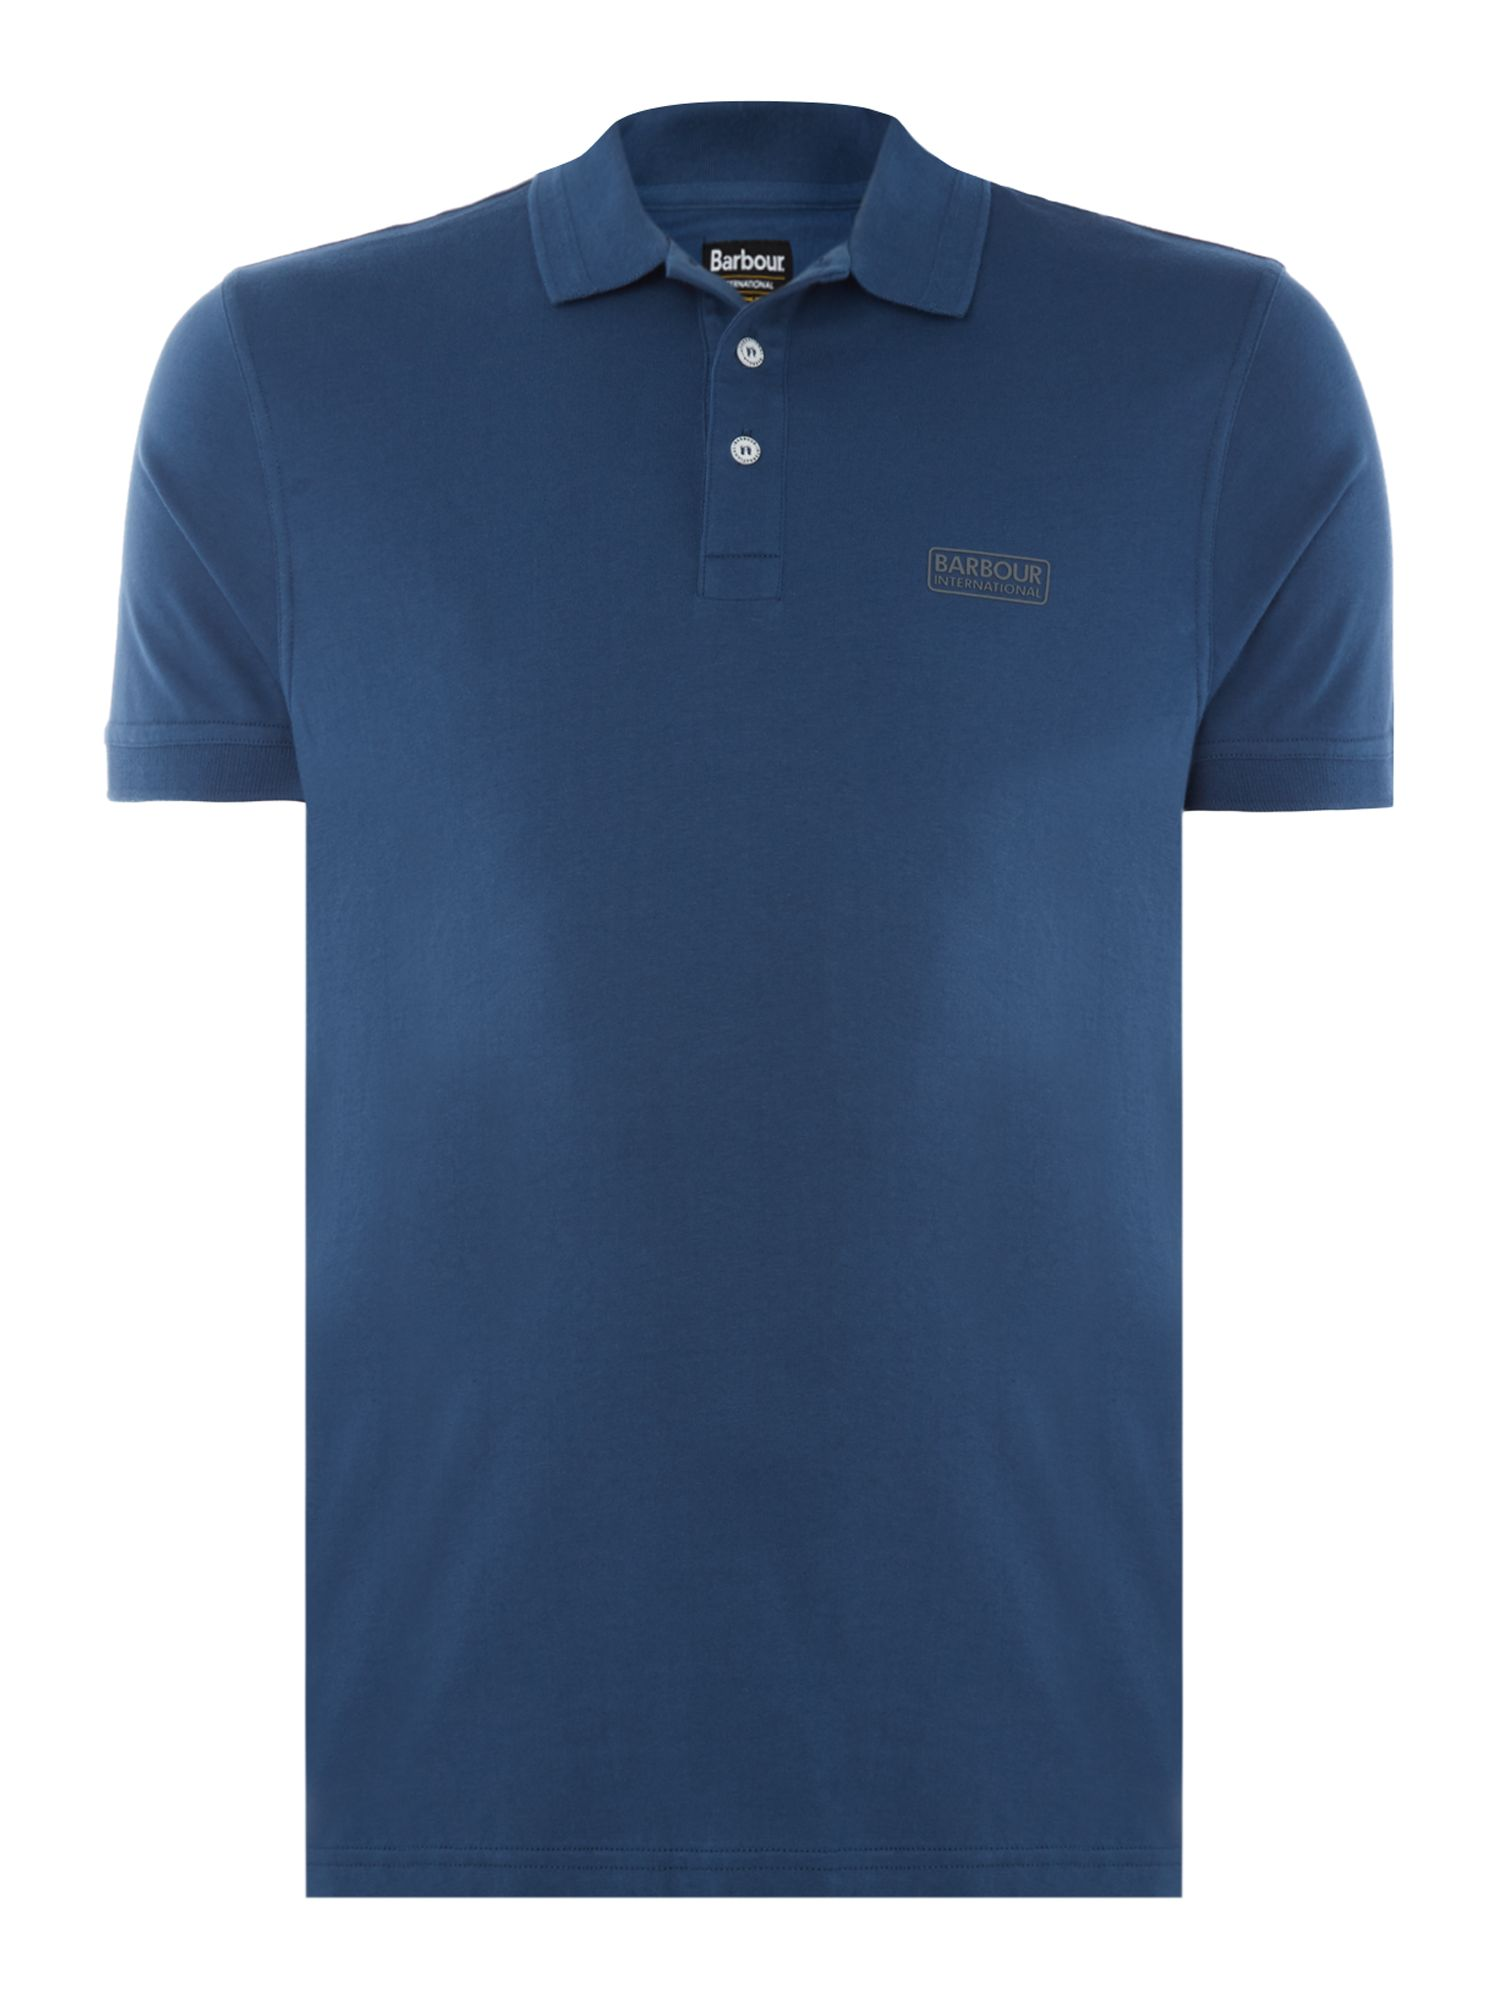 Men's Barbour Kick short sleeve polo, Mid Blue